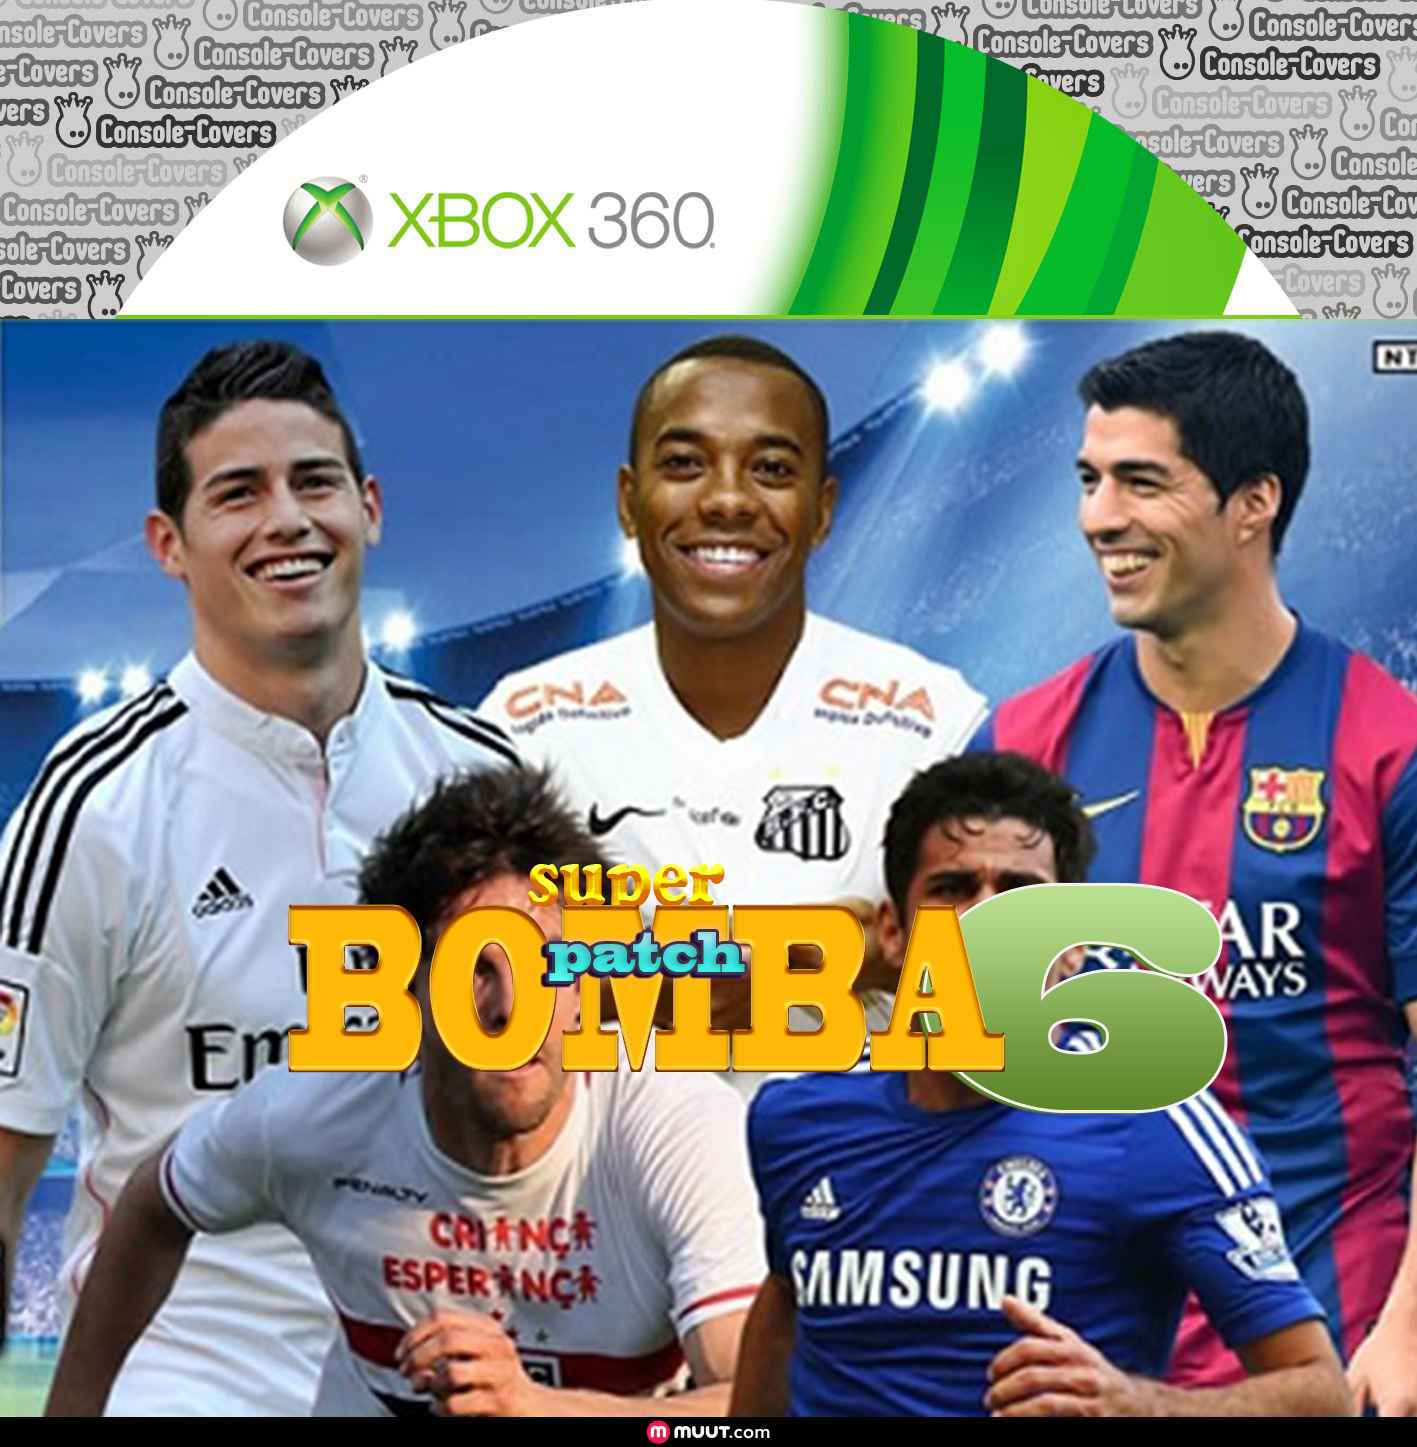 Label Bomba Patch 6 Xbox 360